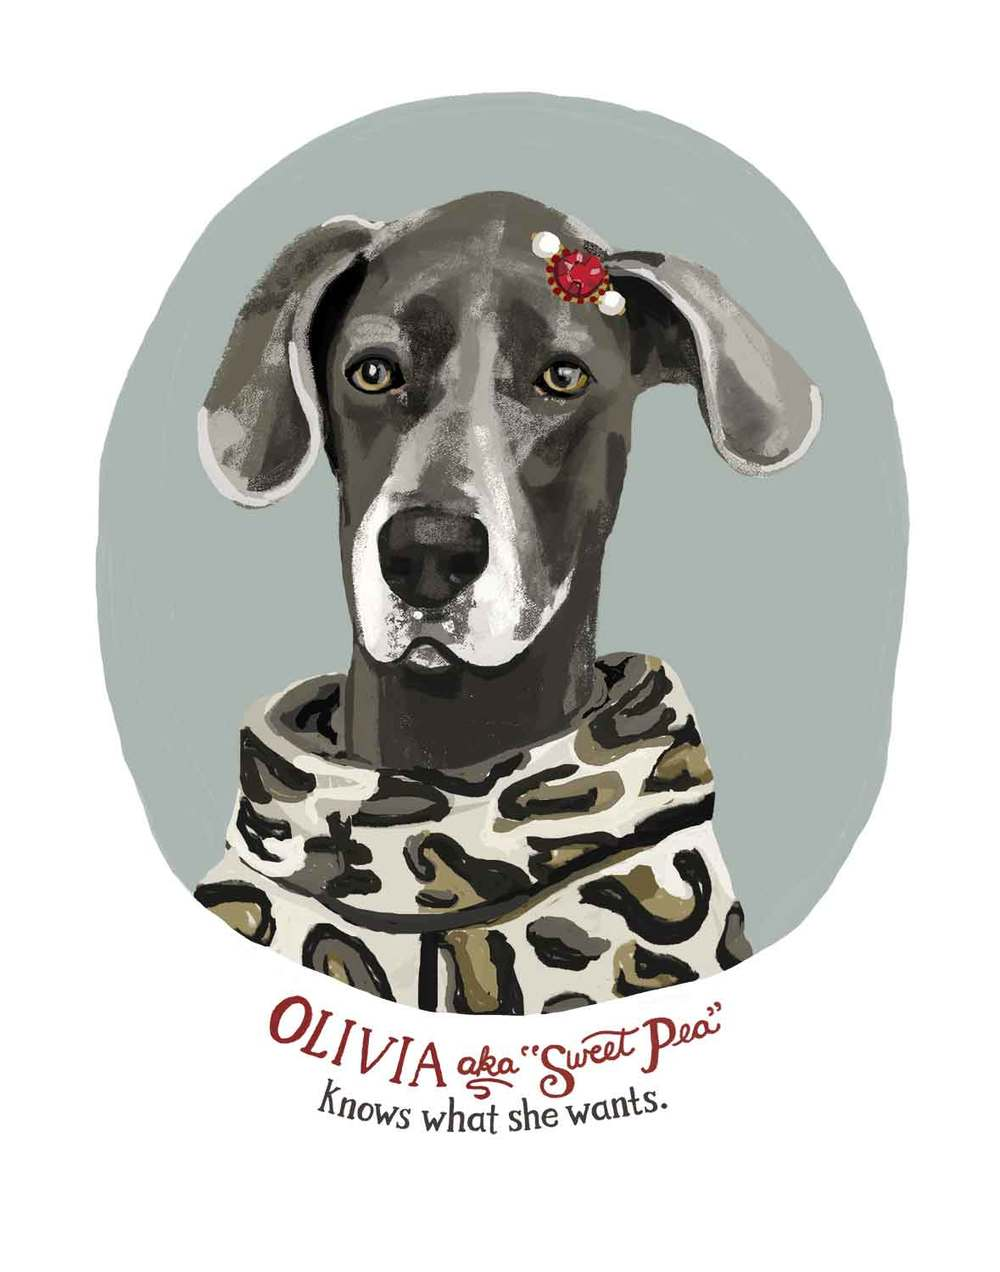 Olivia, the Great Dane